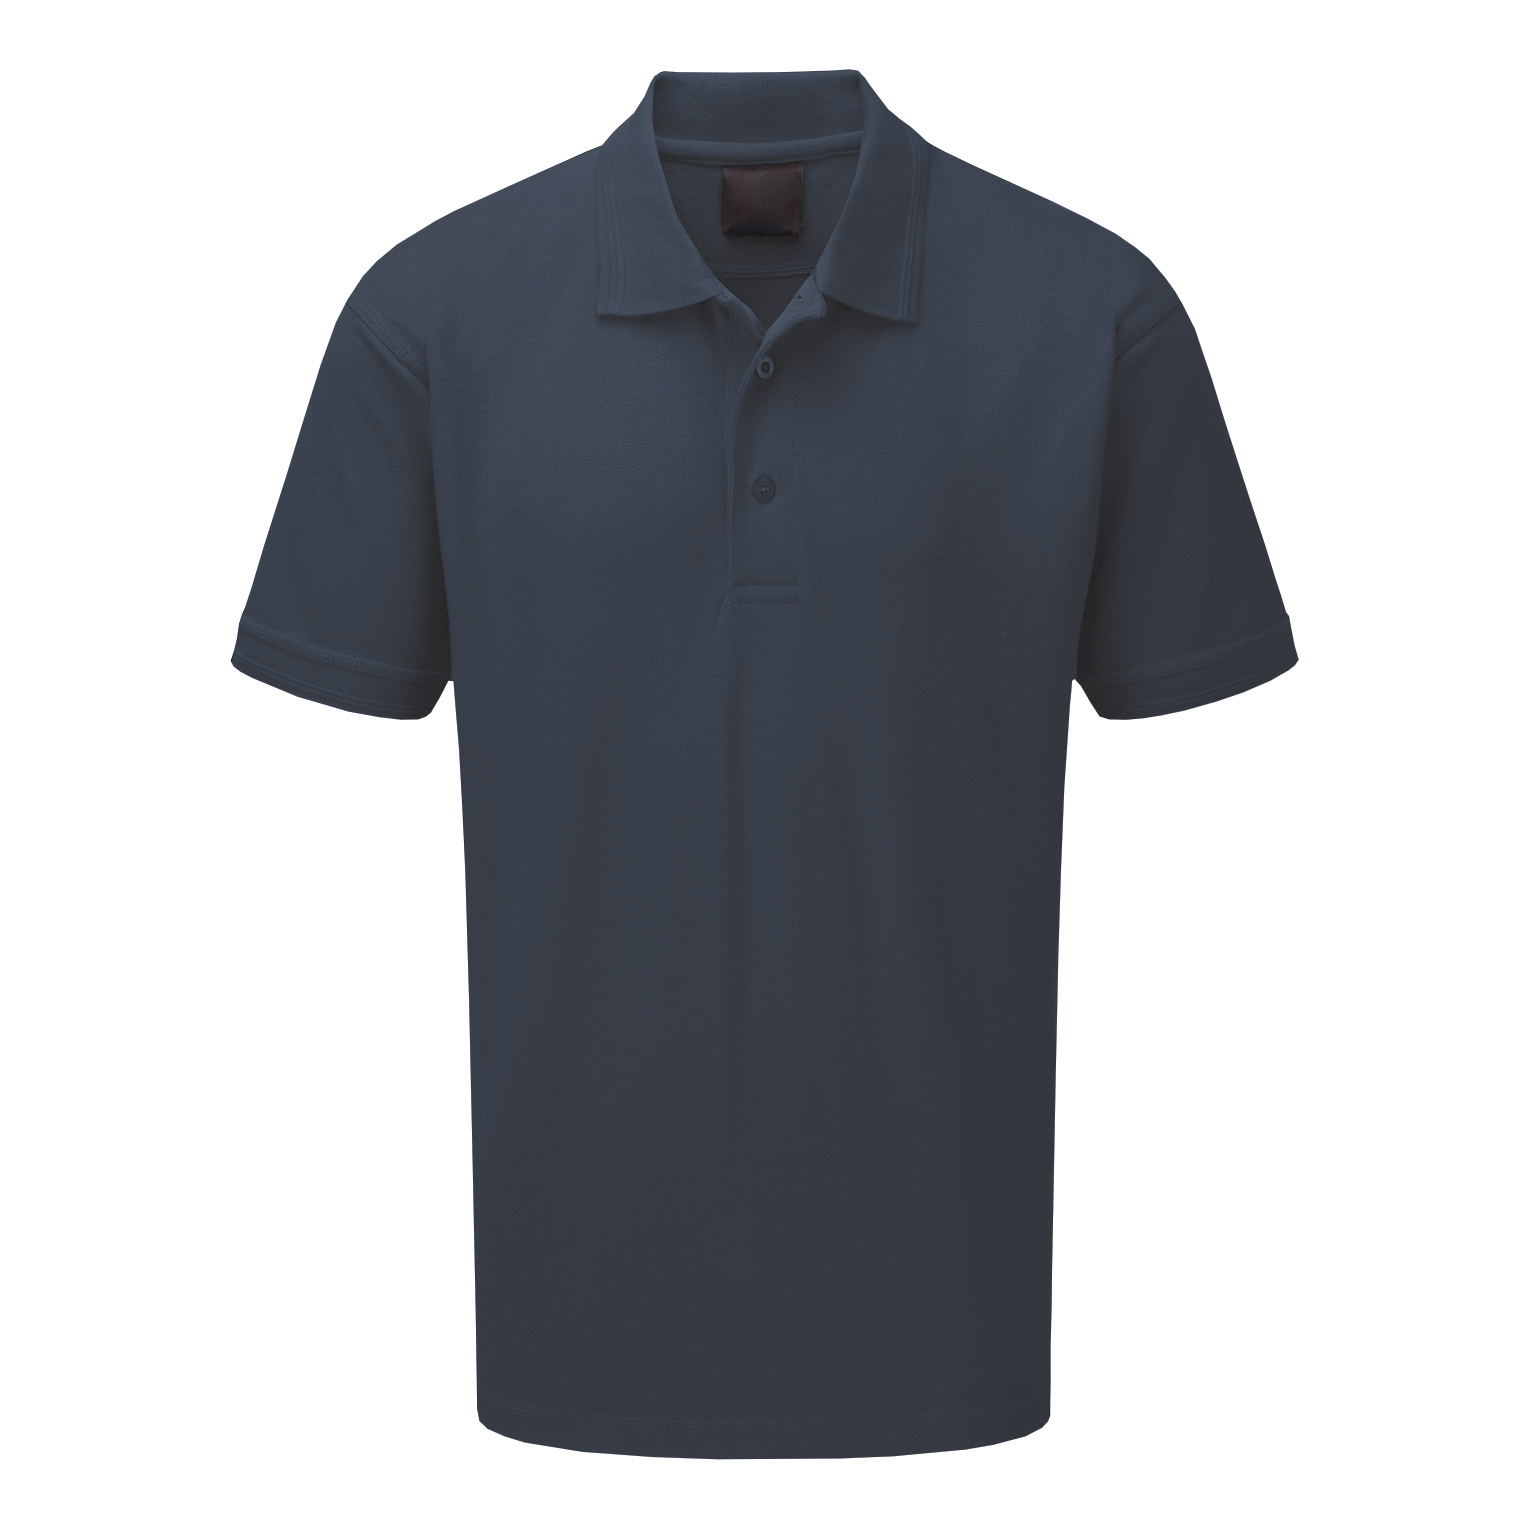 Premium Polo Shirt Triple Button 220gsm Polycotton 3XL Graphite Ref CLPKSGYXXXL *Approx 3 Day Leadtime*